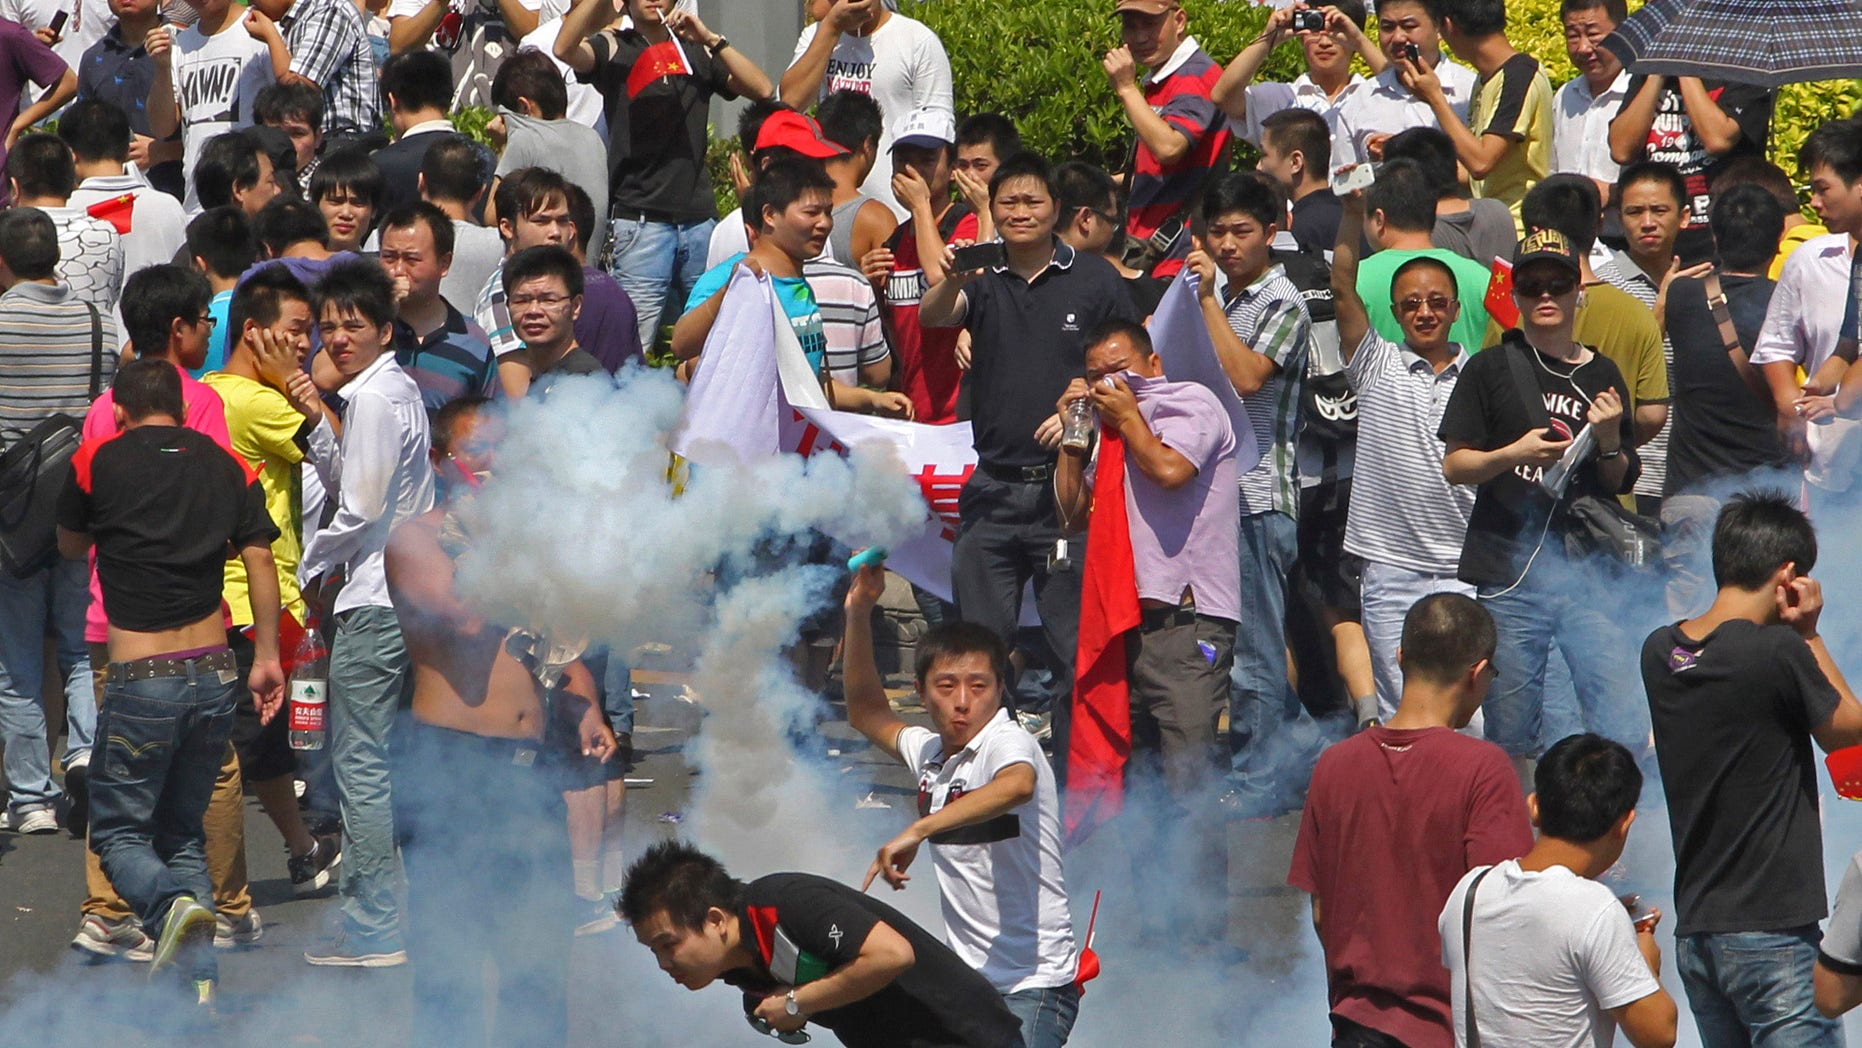 Sept. 16, 2012: A Chinese demonstrator throws a teargas canister back to riot policemen during a protest against Japan in Shenzhen, China.